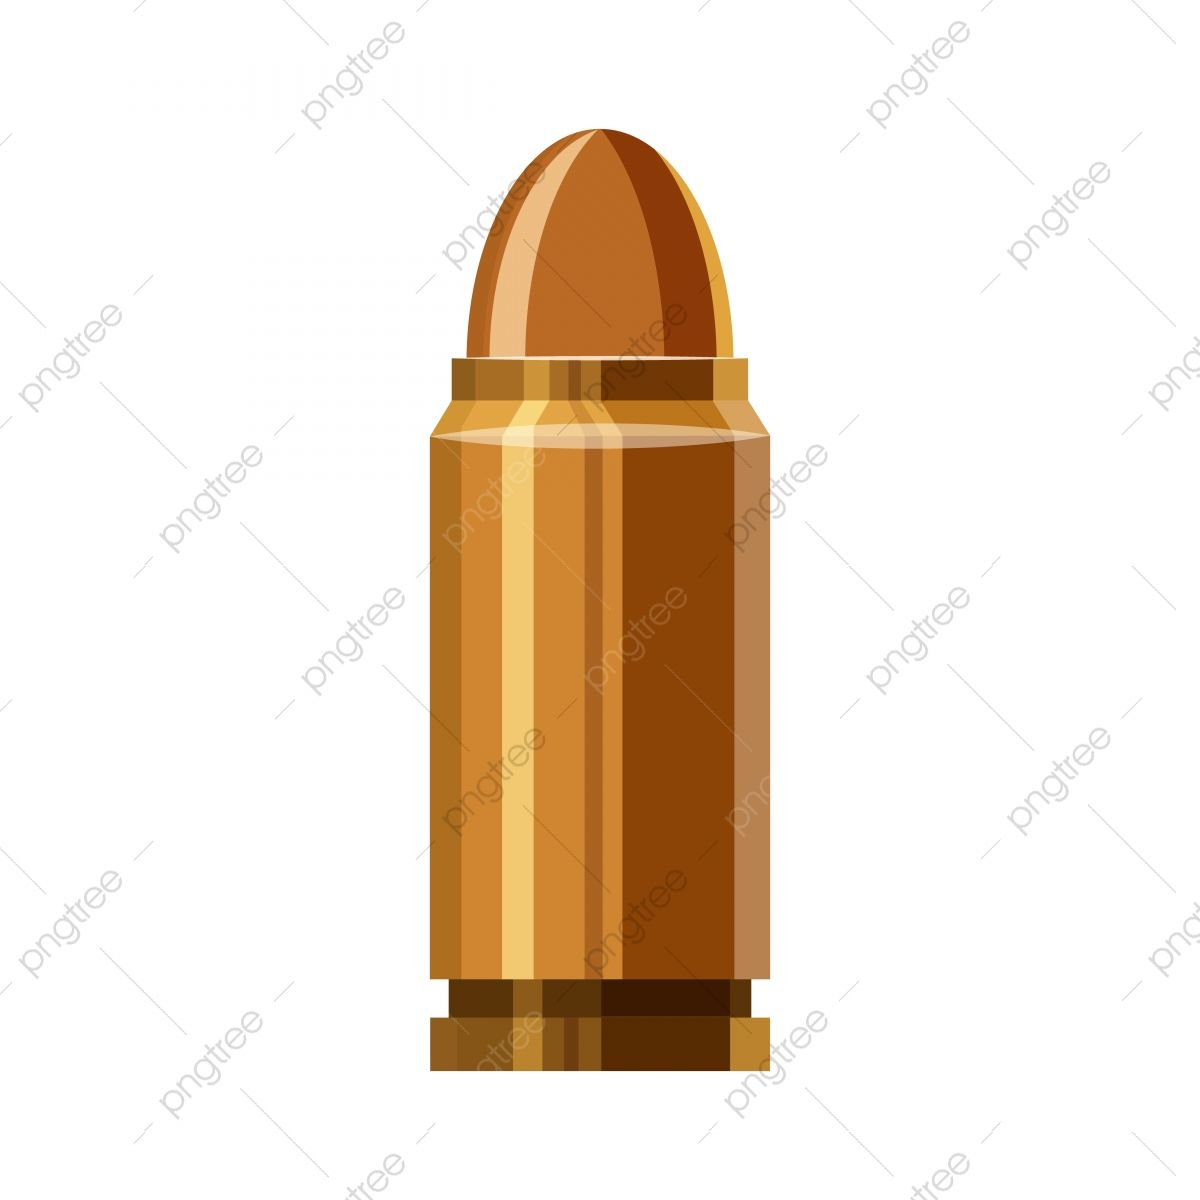 Bullet Icon In Cartoon Style Style Icons Cartoon Icons Bullet Icons Png And Vector With Transparent Background For Free Download Bullet Icon Cartoon Styles Cartoon Icons